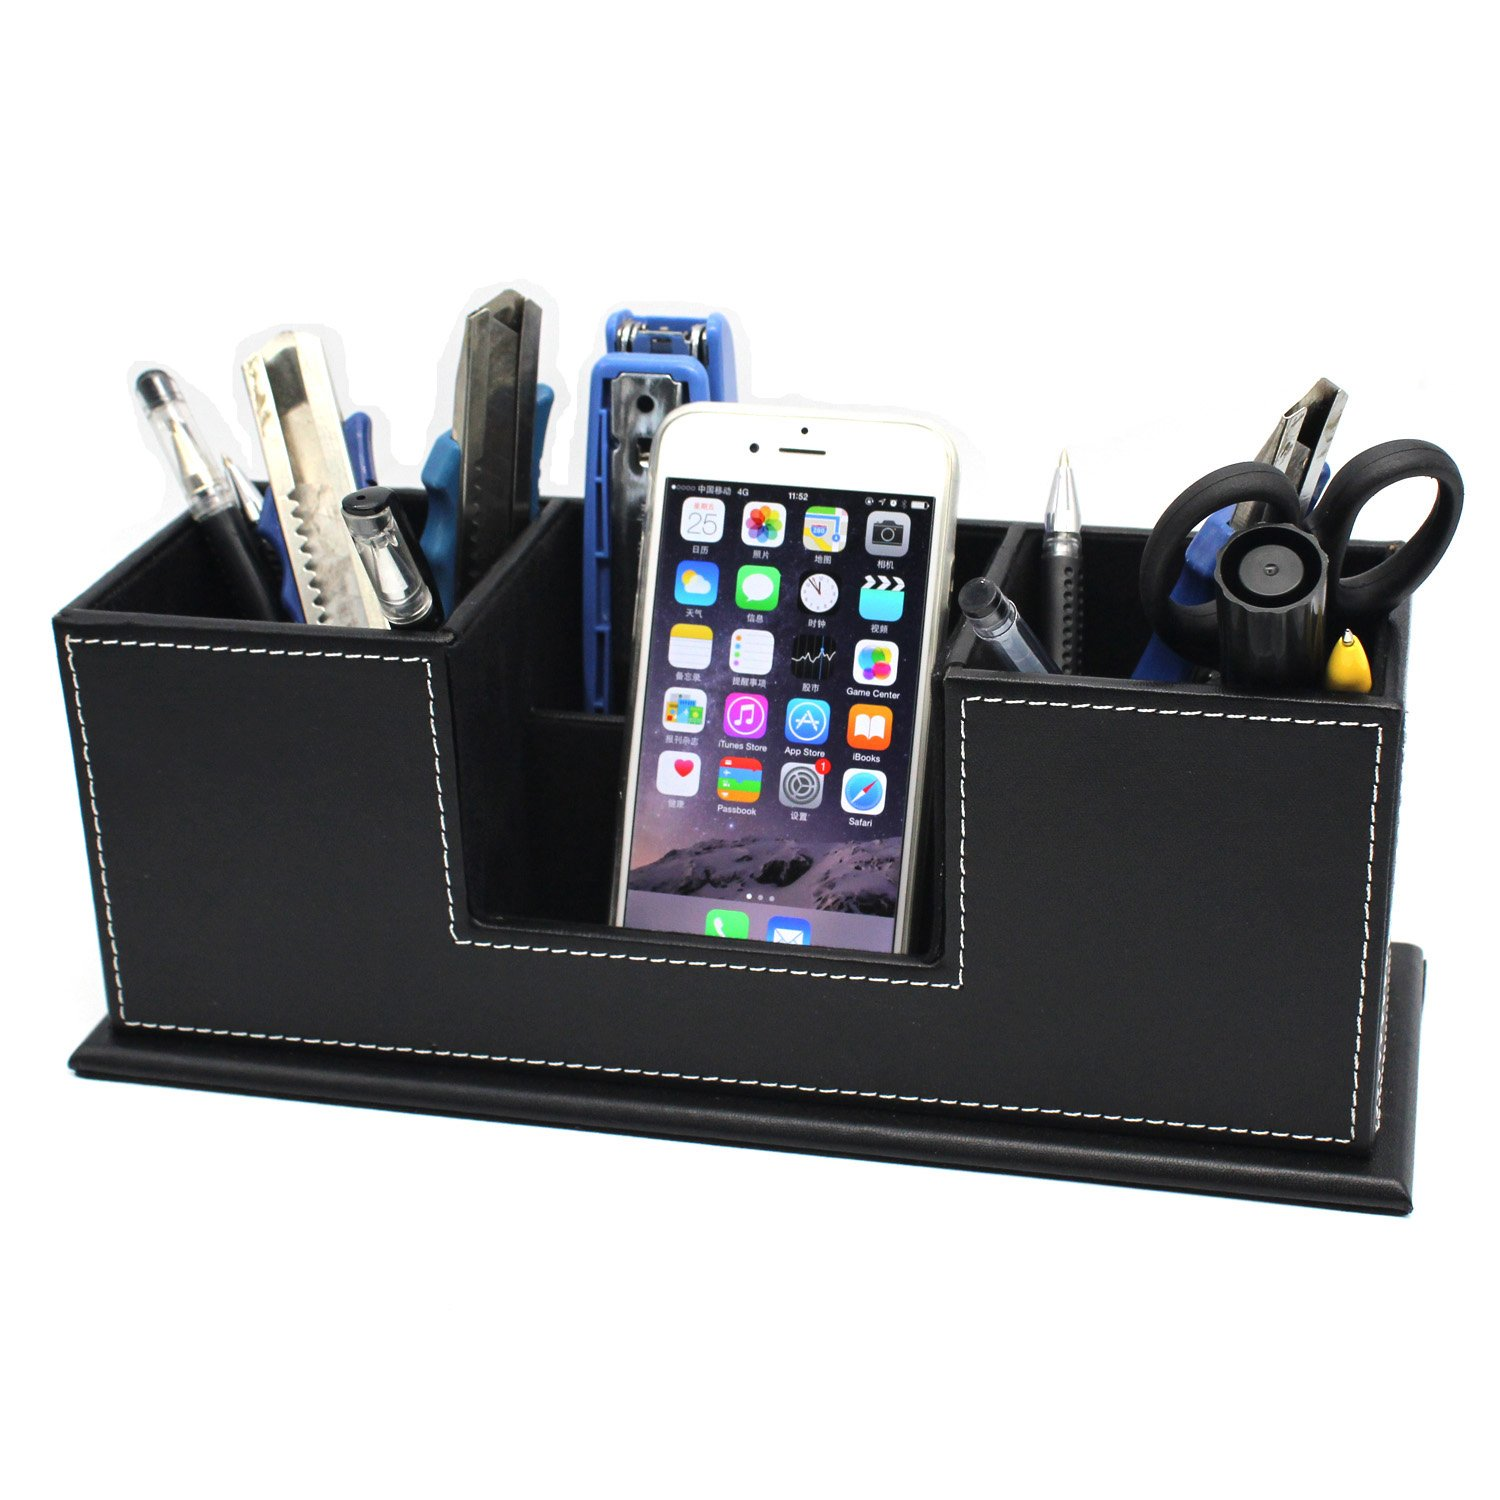 MOTONG Multi-function Leather Desk Stationery Organizer Storage Case For Mobile and Office Stationery (Black)